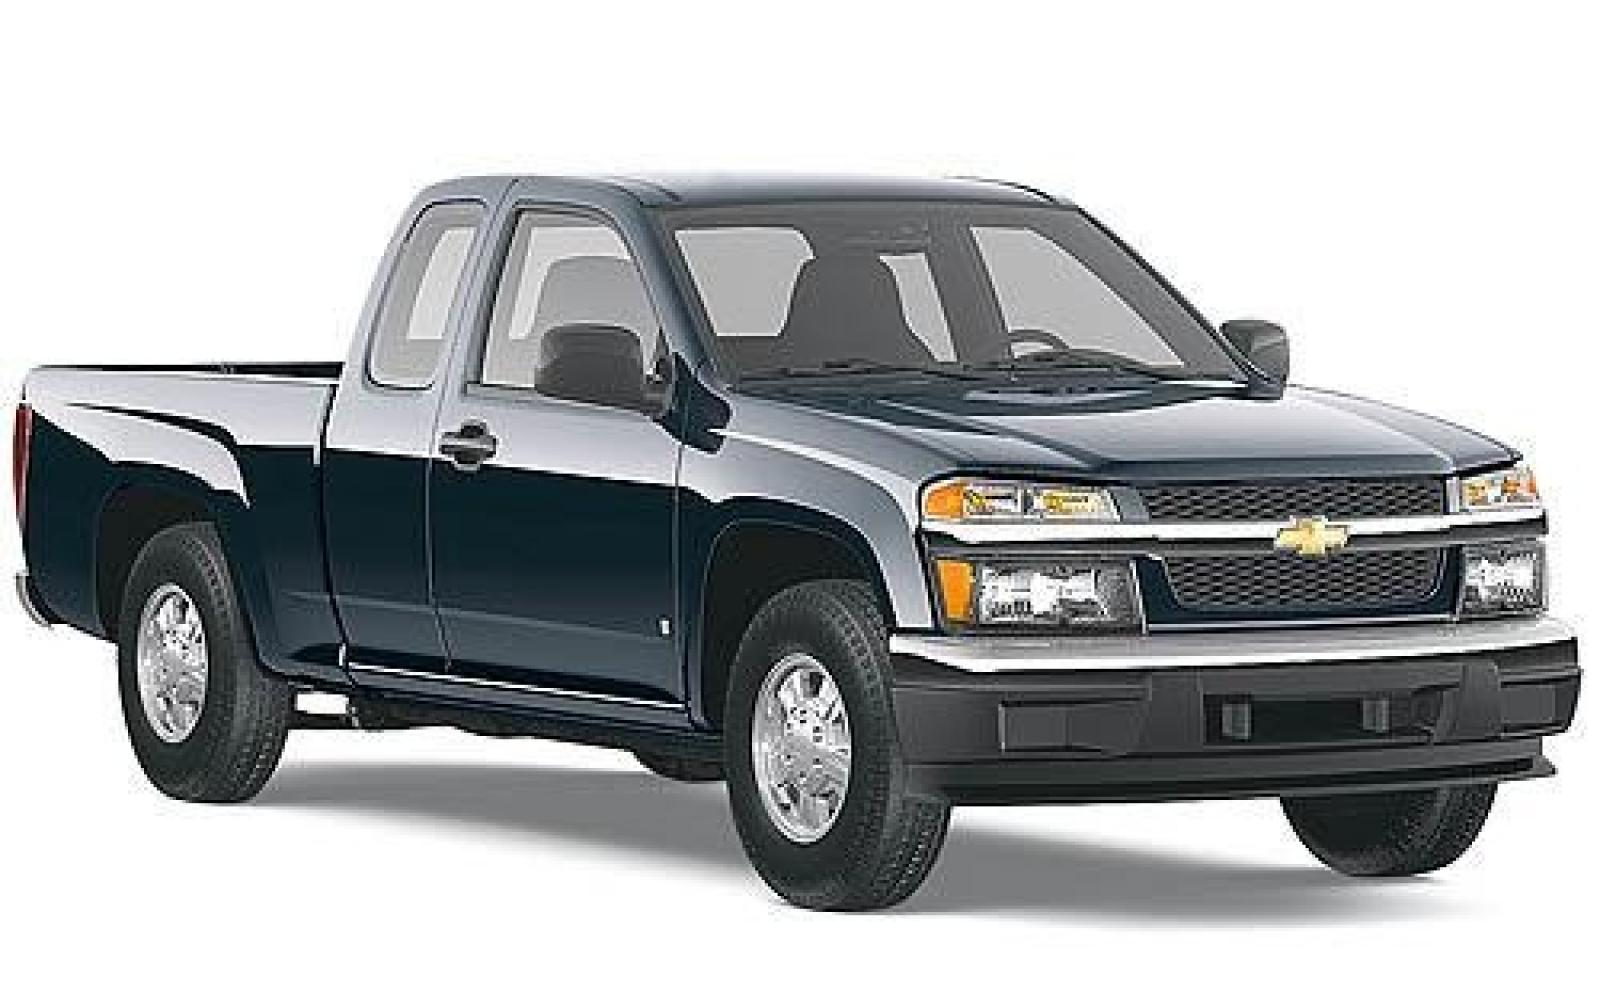 2010 chevrolet colorado information and photos zombiedrive. Black Bedroom Furniture Sets. Home Design Ideas